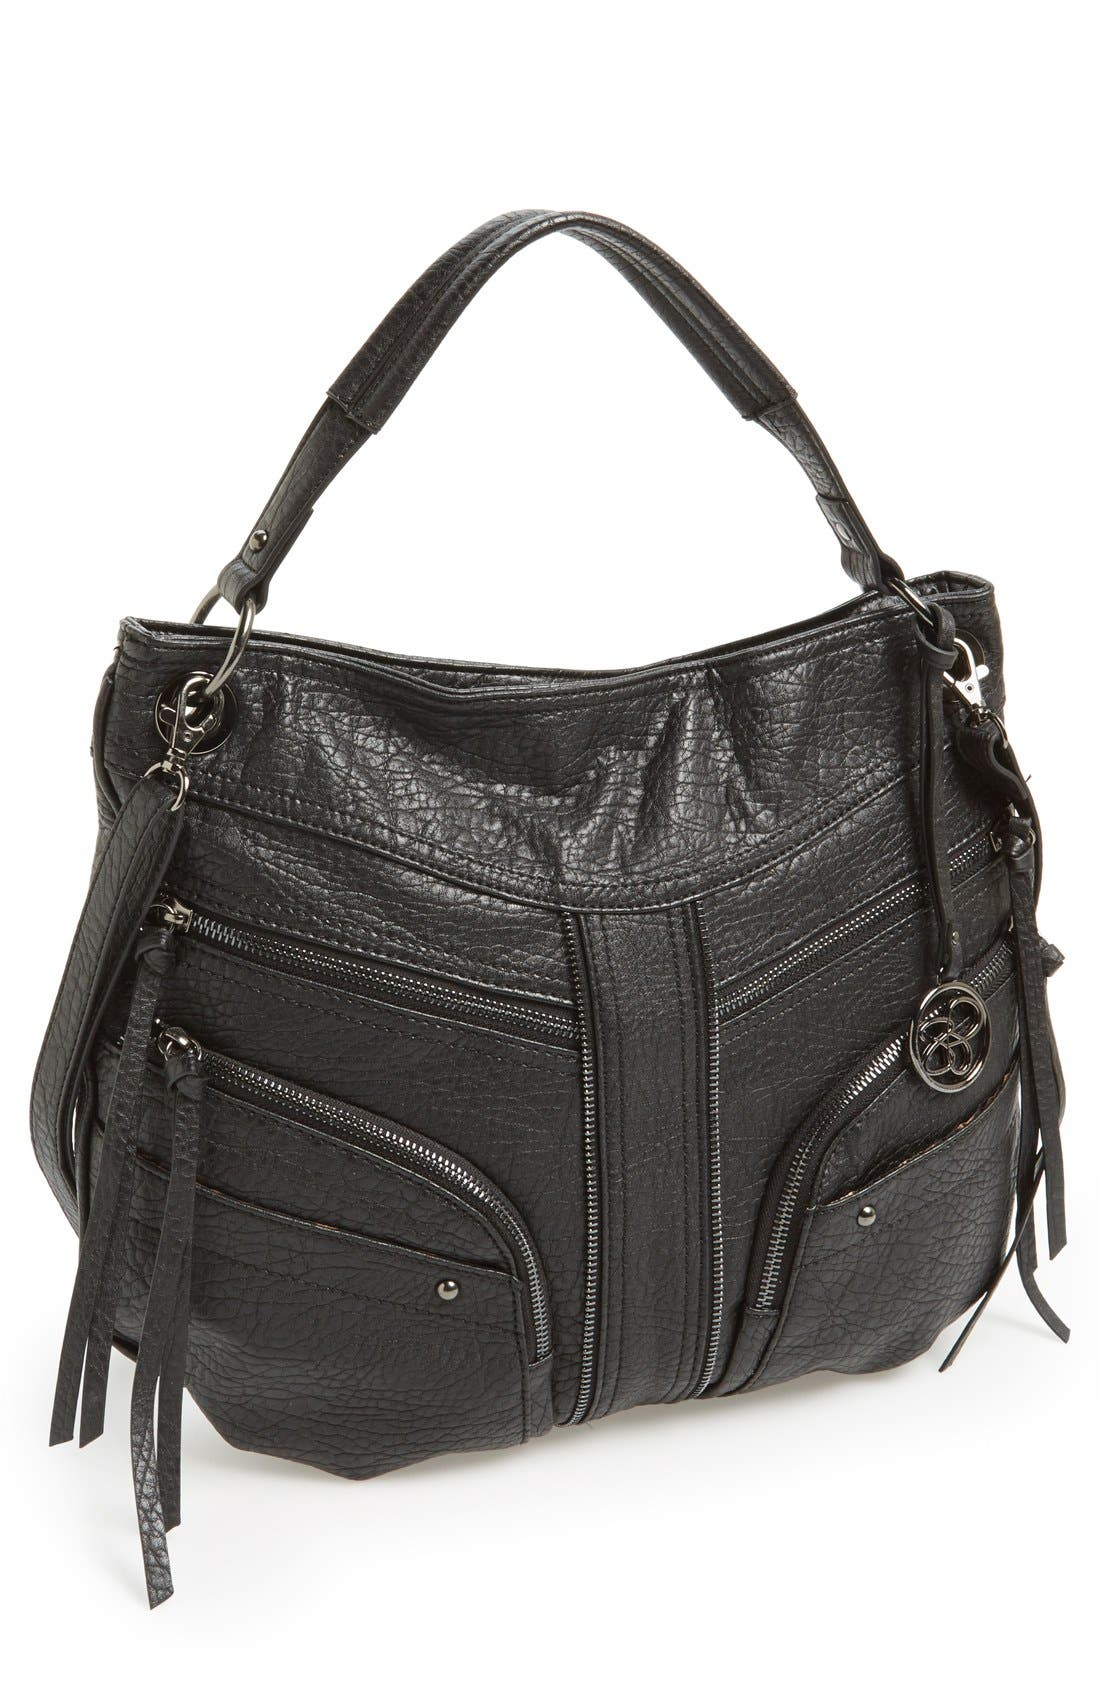 Alternate Image 1 Selected - Jessica Simpson 'Raina' Bucket Bag